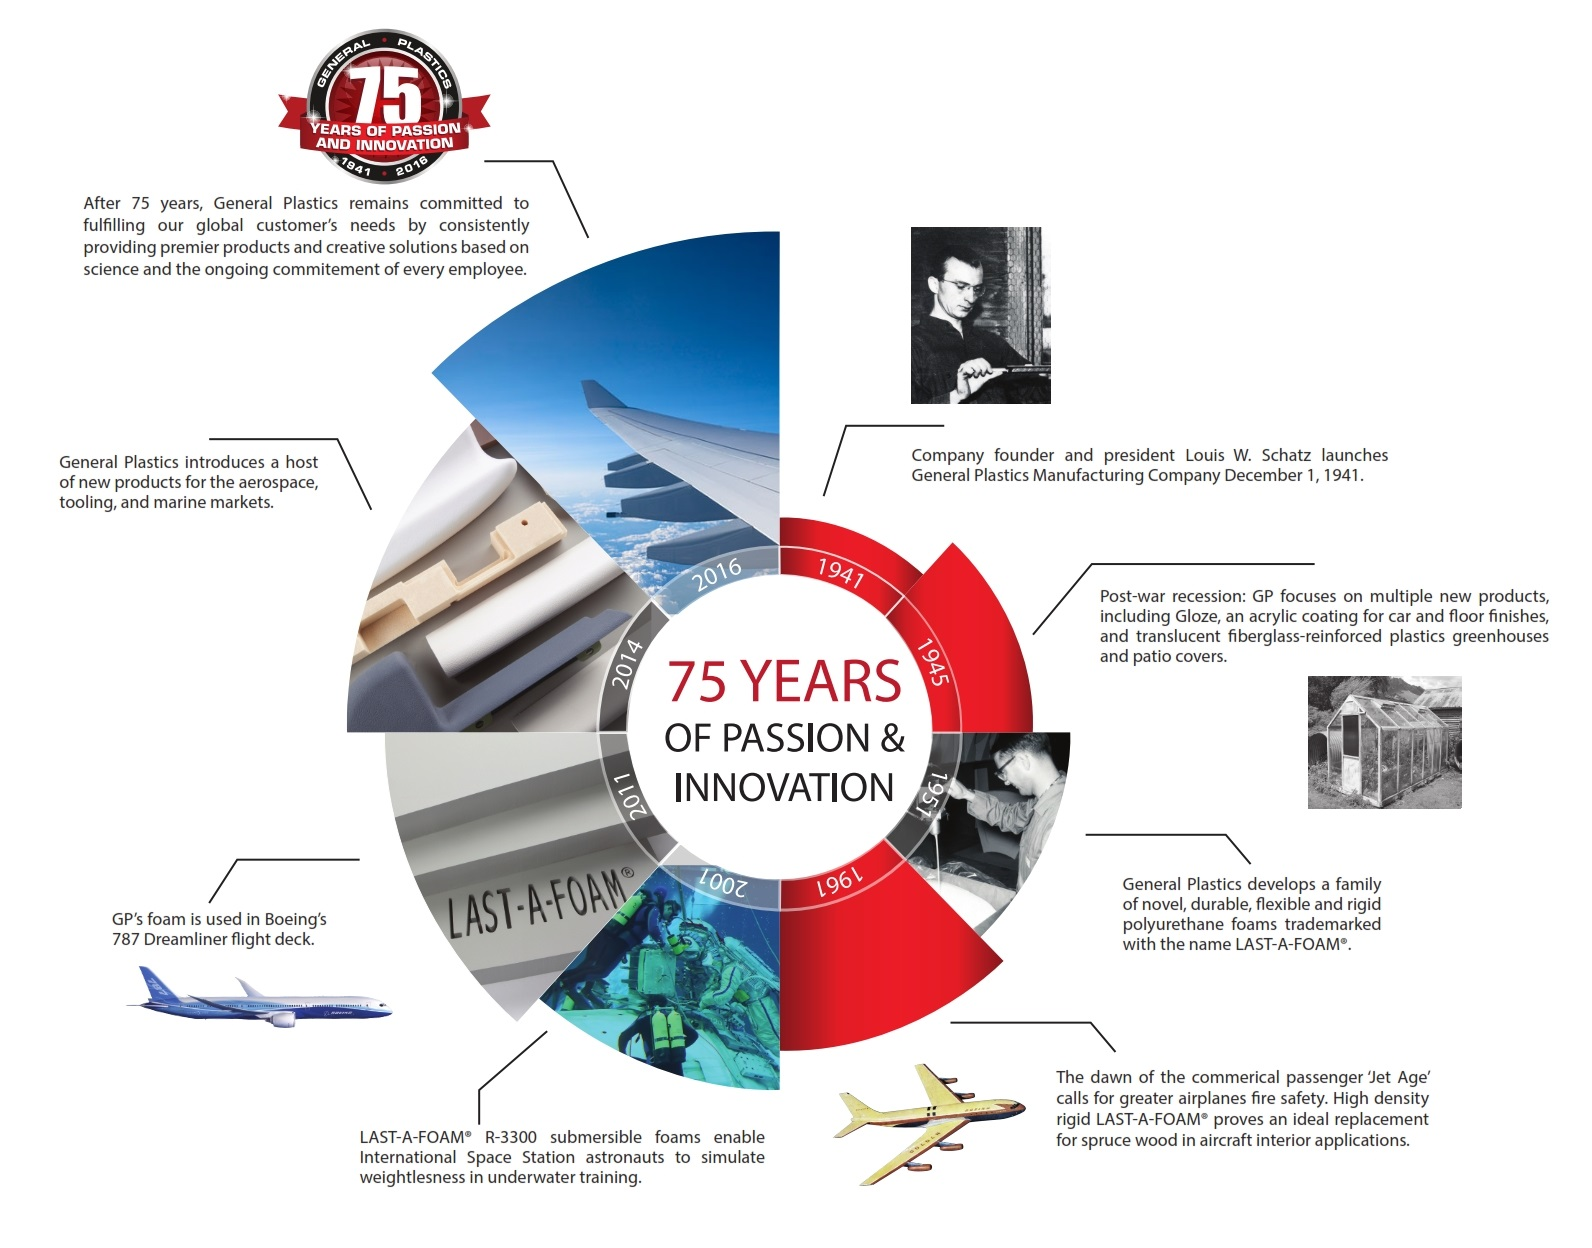 75 years of General Plastics Passion and Innovation